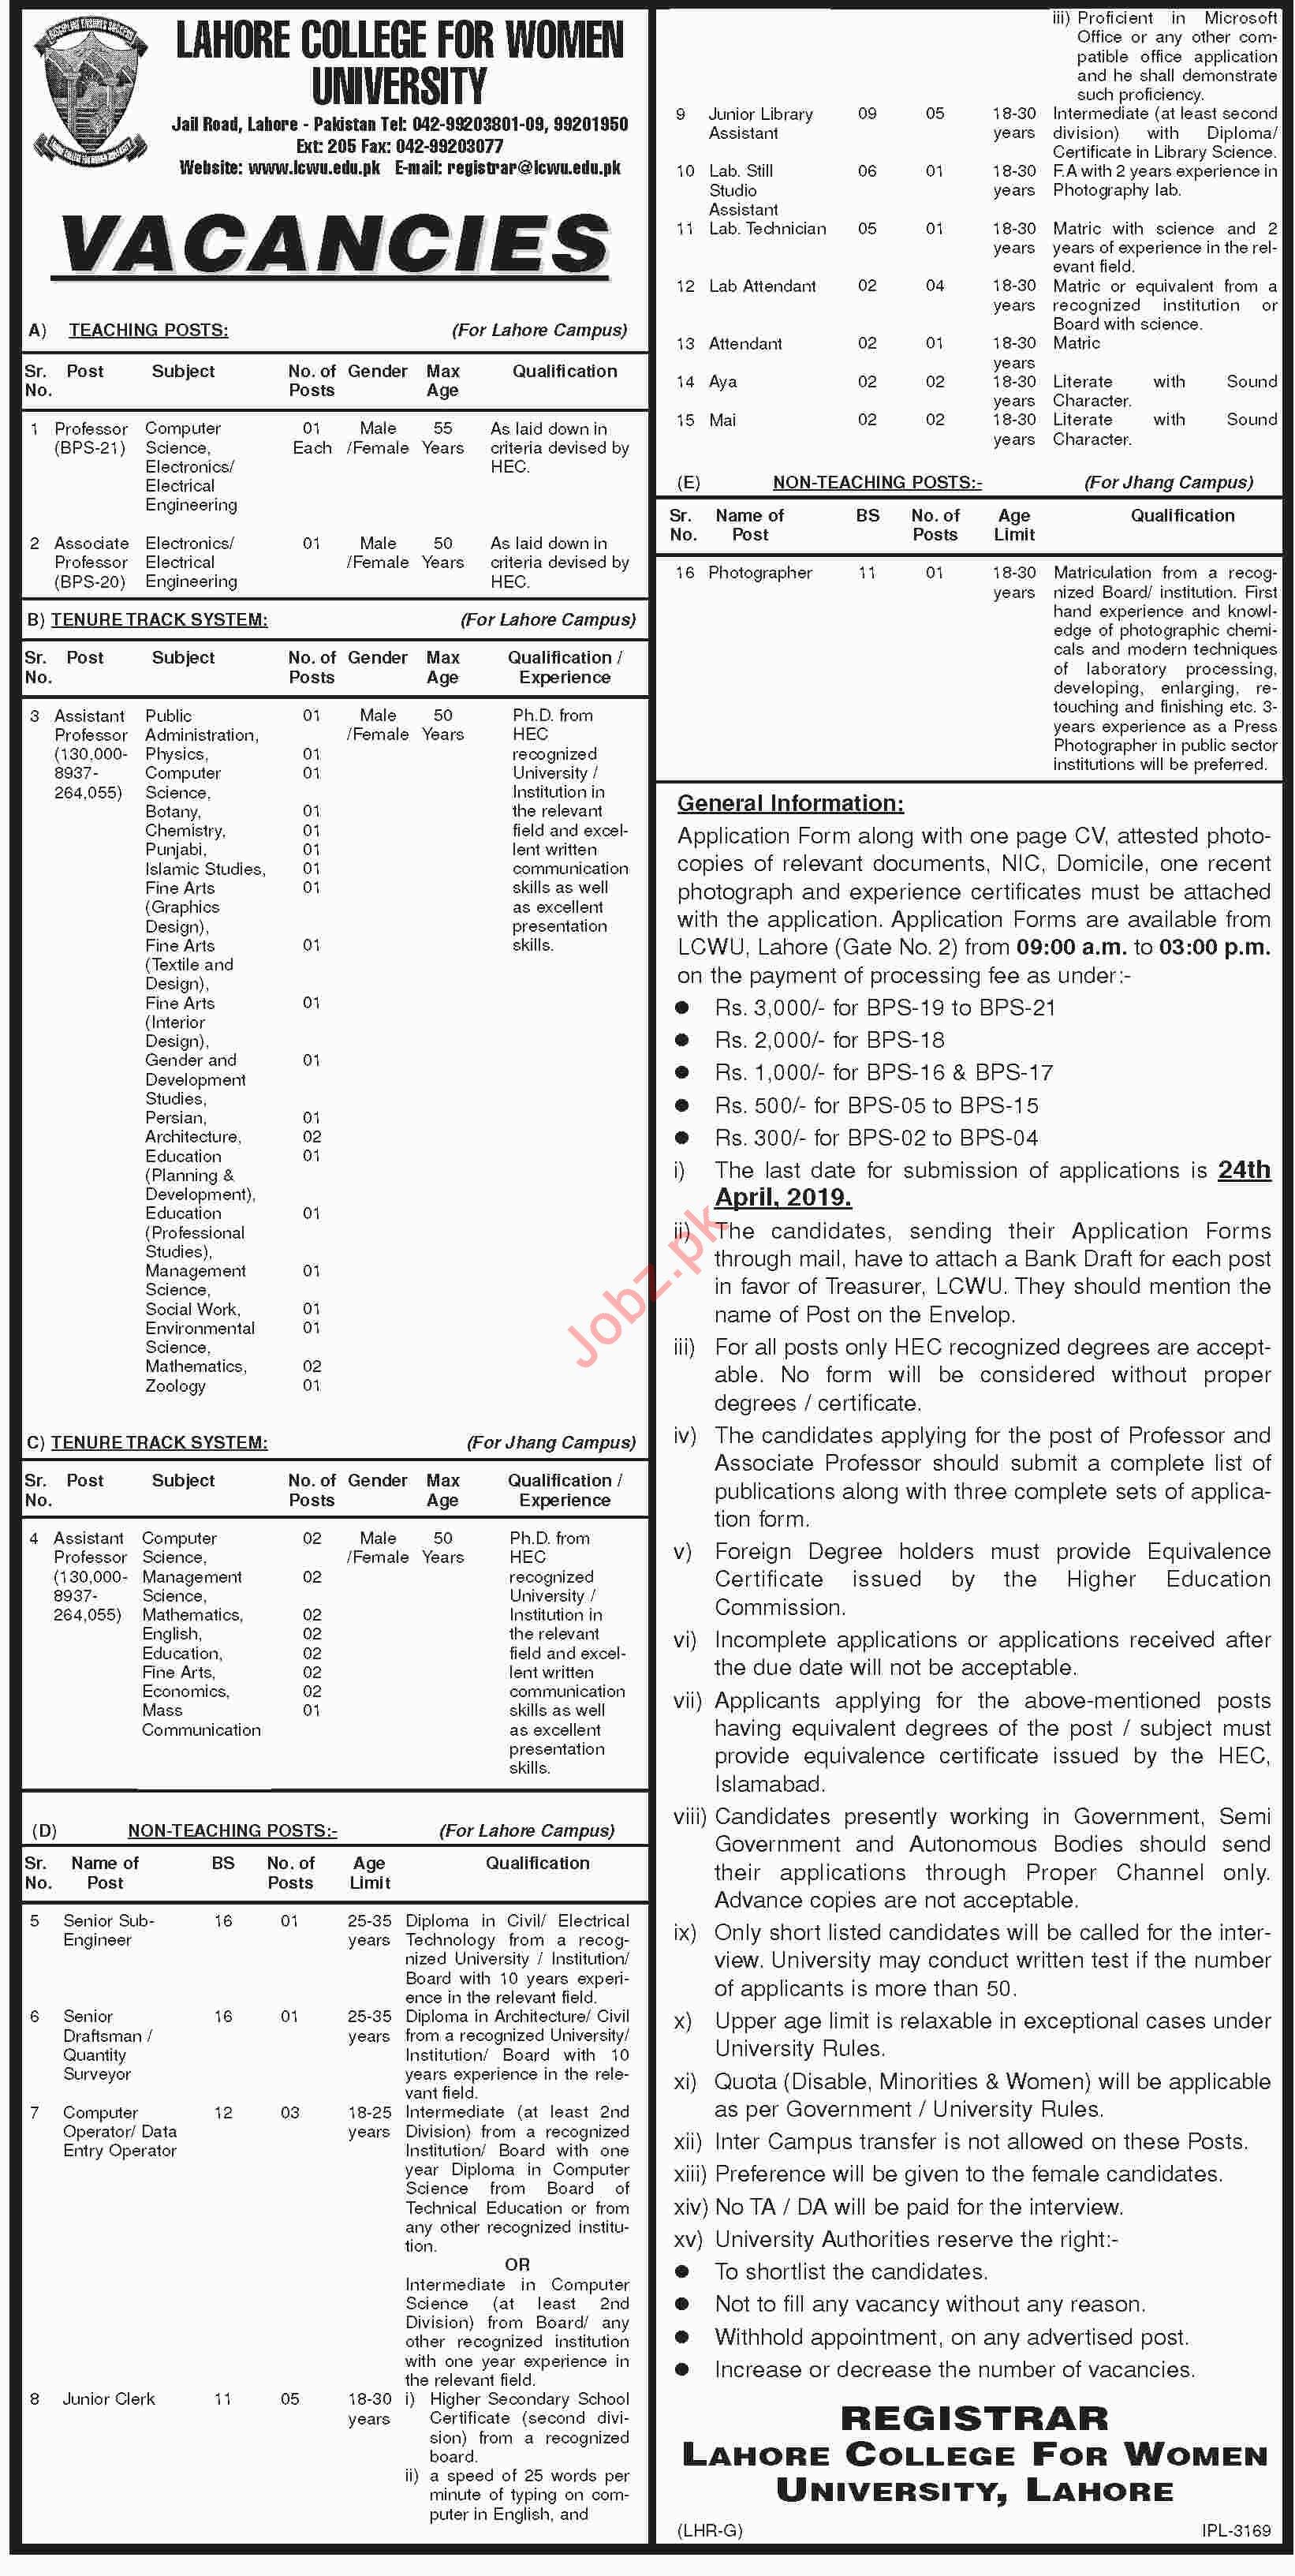 Lahore College For Women University LCWU Jobs 2019